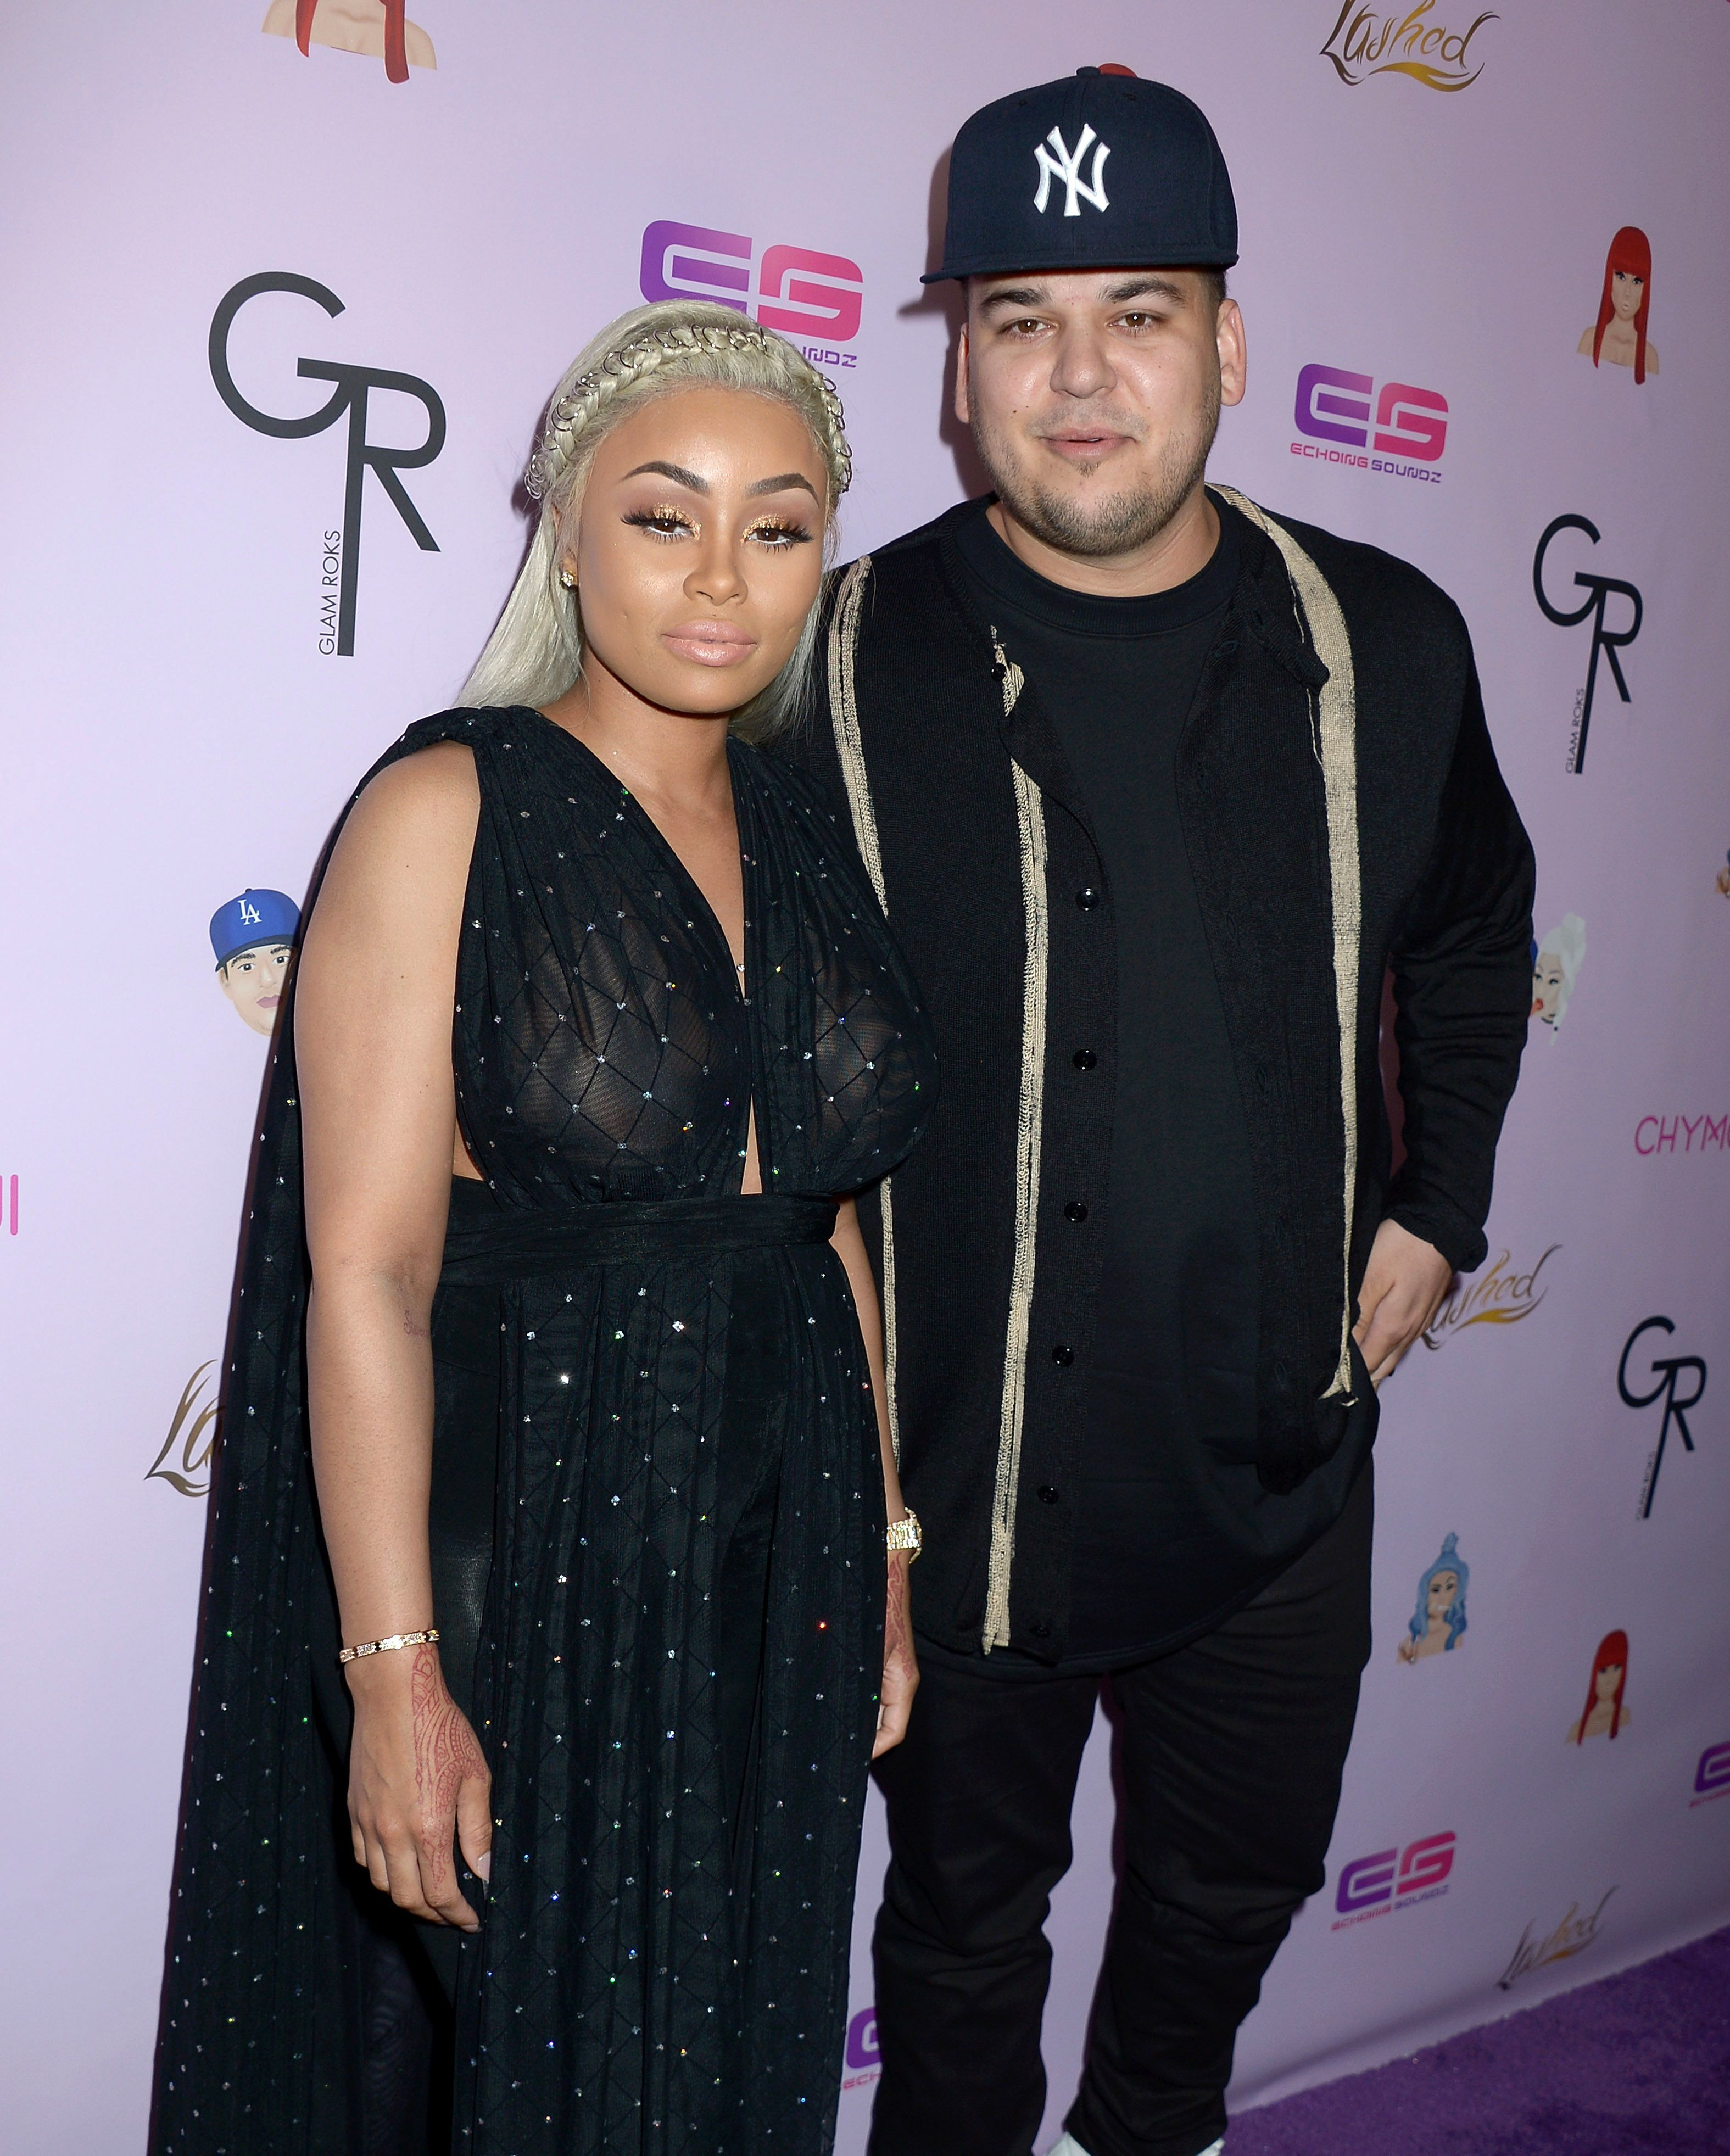 Rob Kardashian and Blac Chyna asked for $100k worth of free nursery items